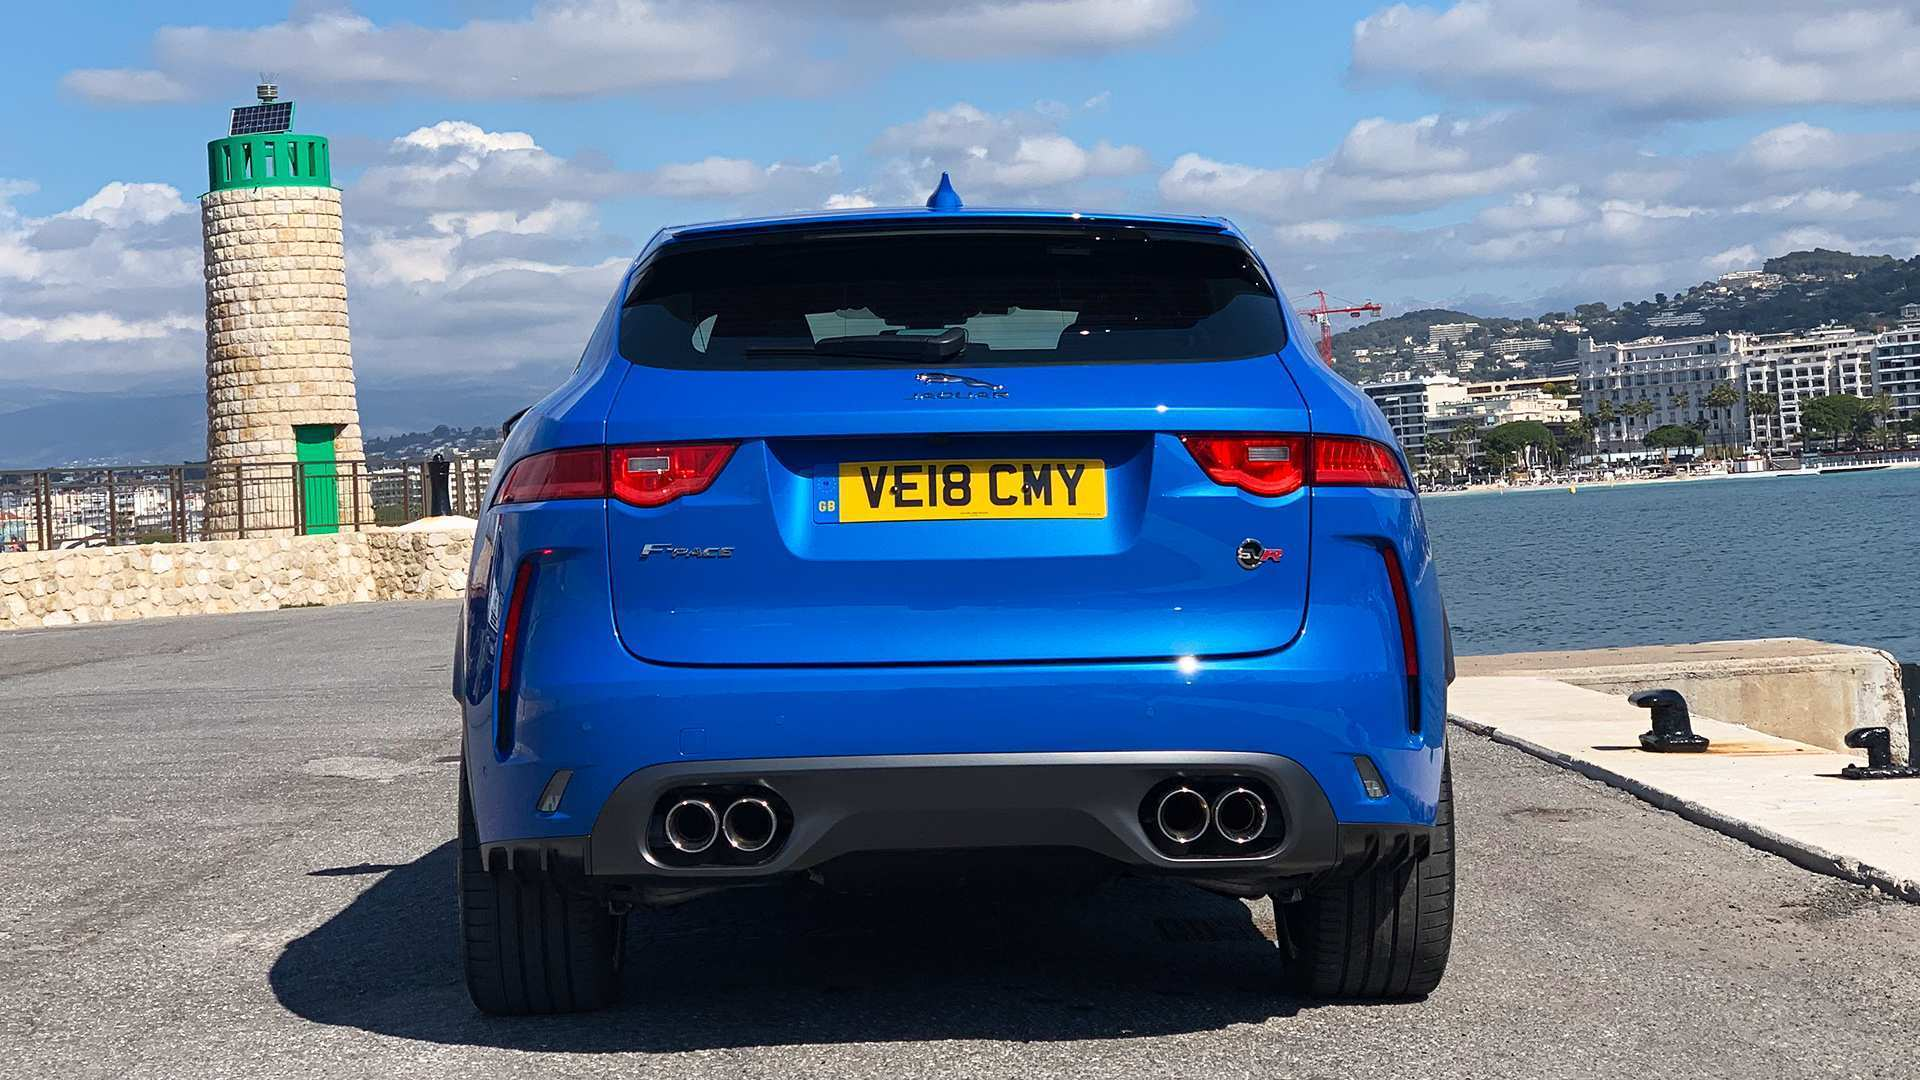 73 New 2019 Jaguar F Pace Svr Exterior And Interior